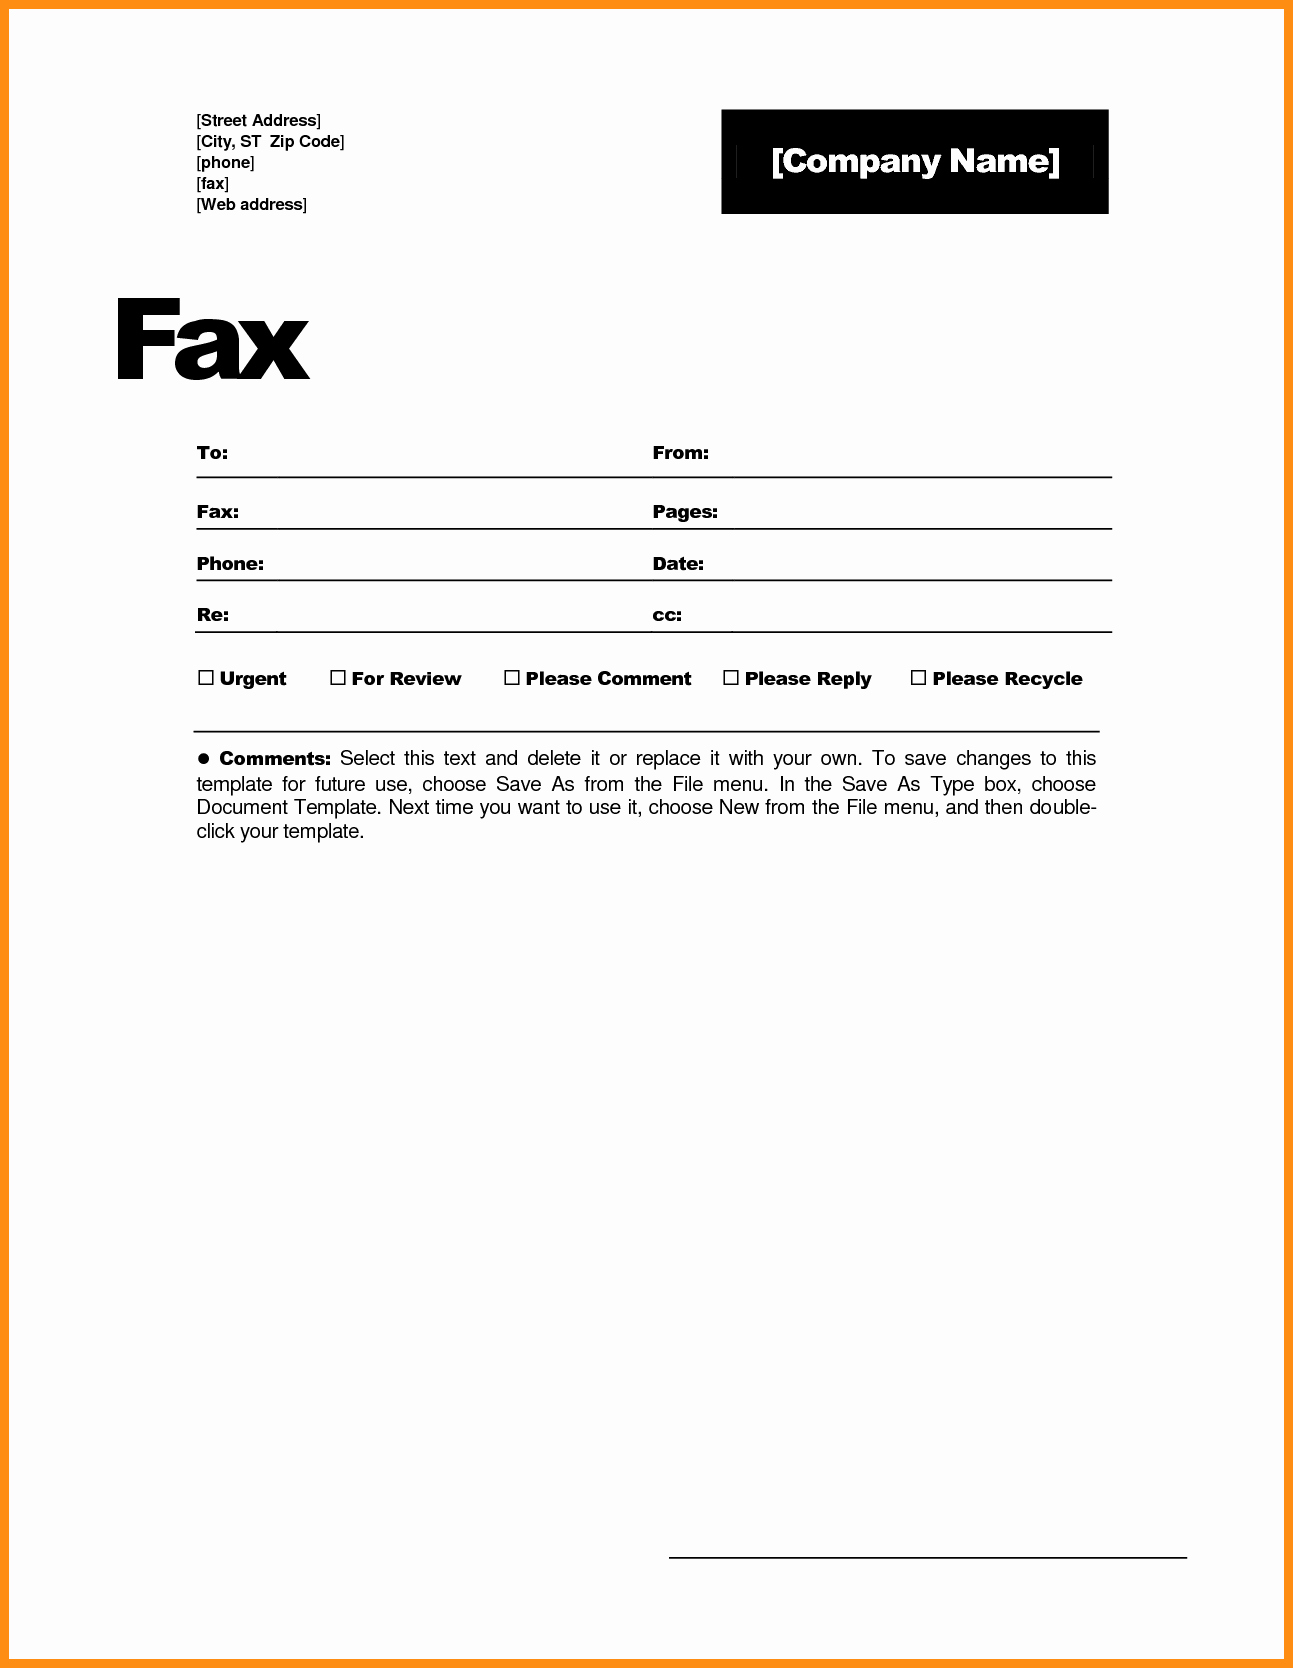 Free Fax Cover Letter Template Lovely 6 Free Fax Cover Sheet Template Word